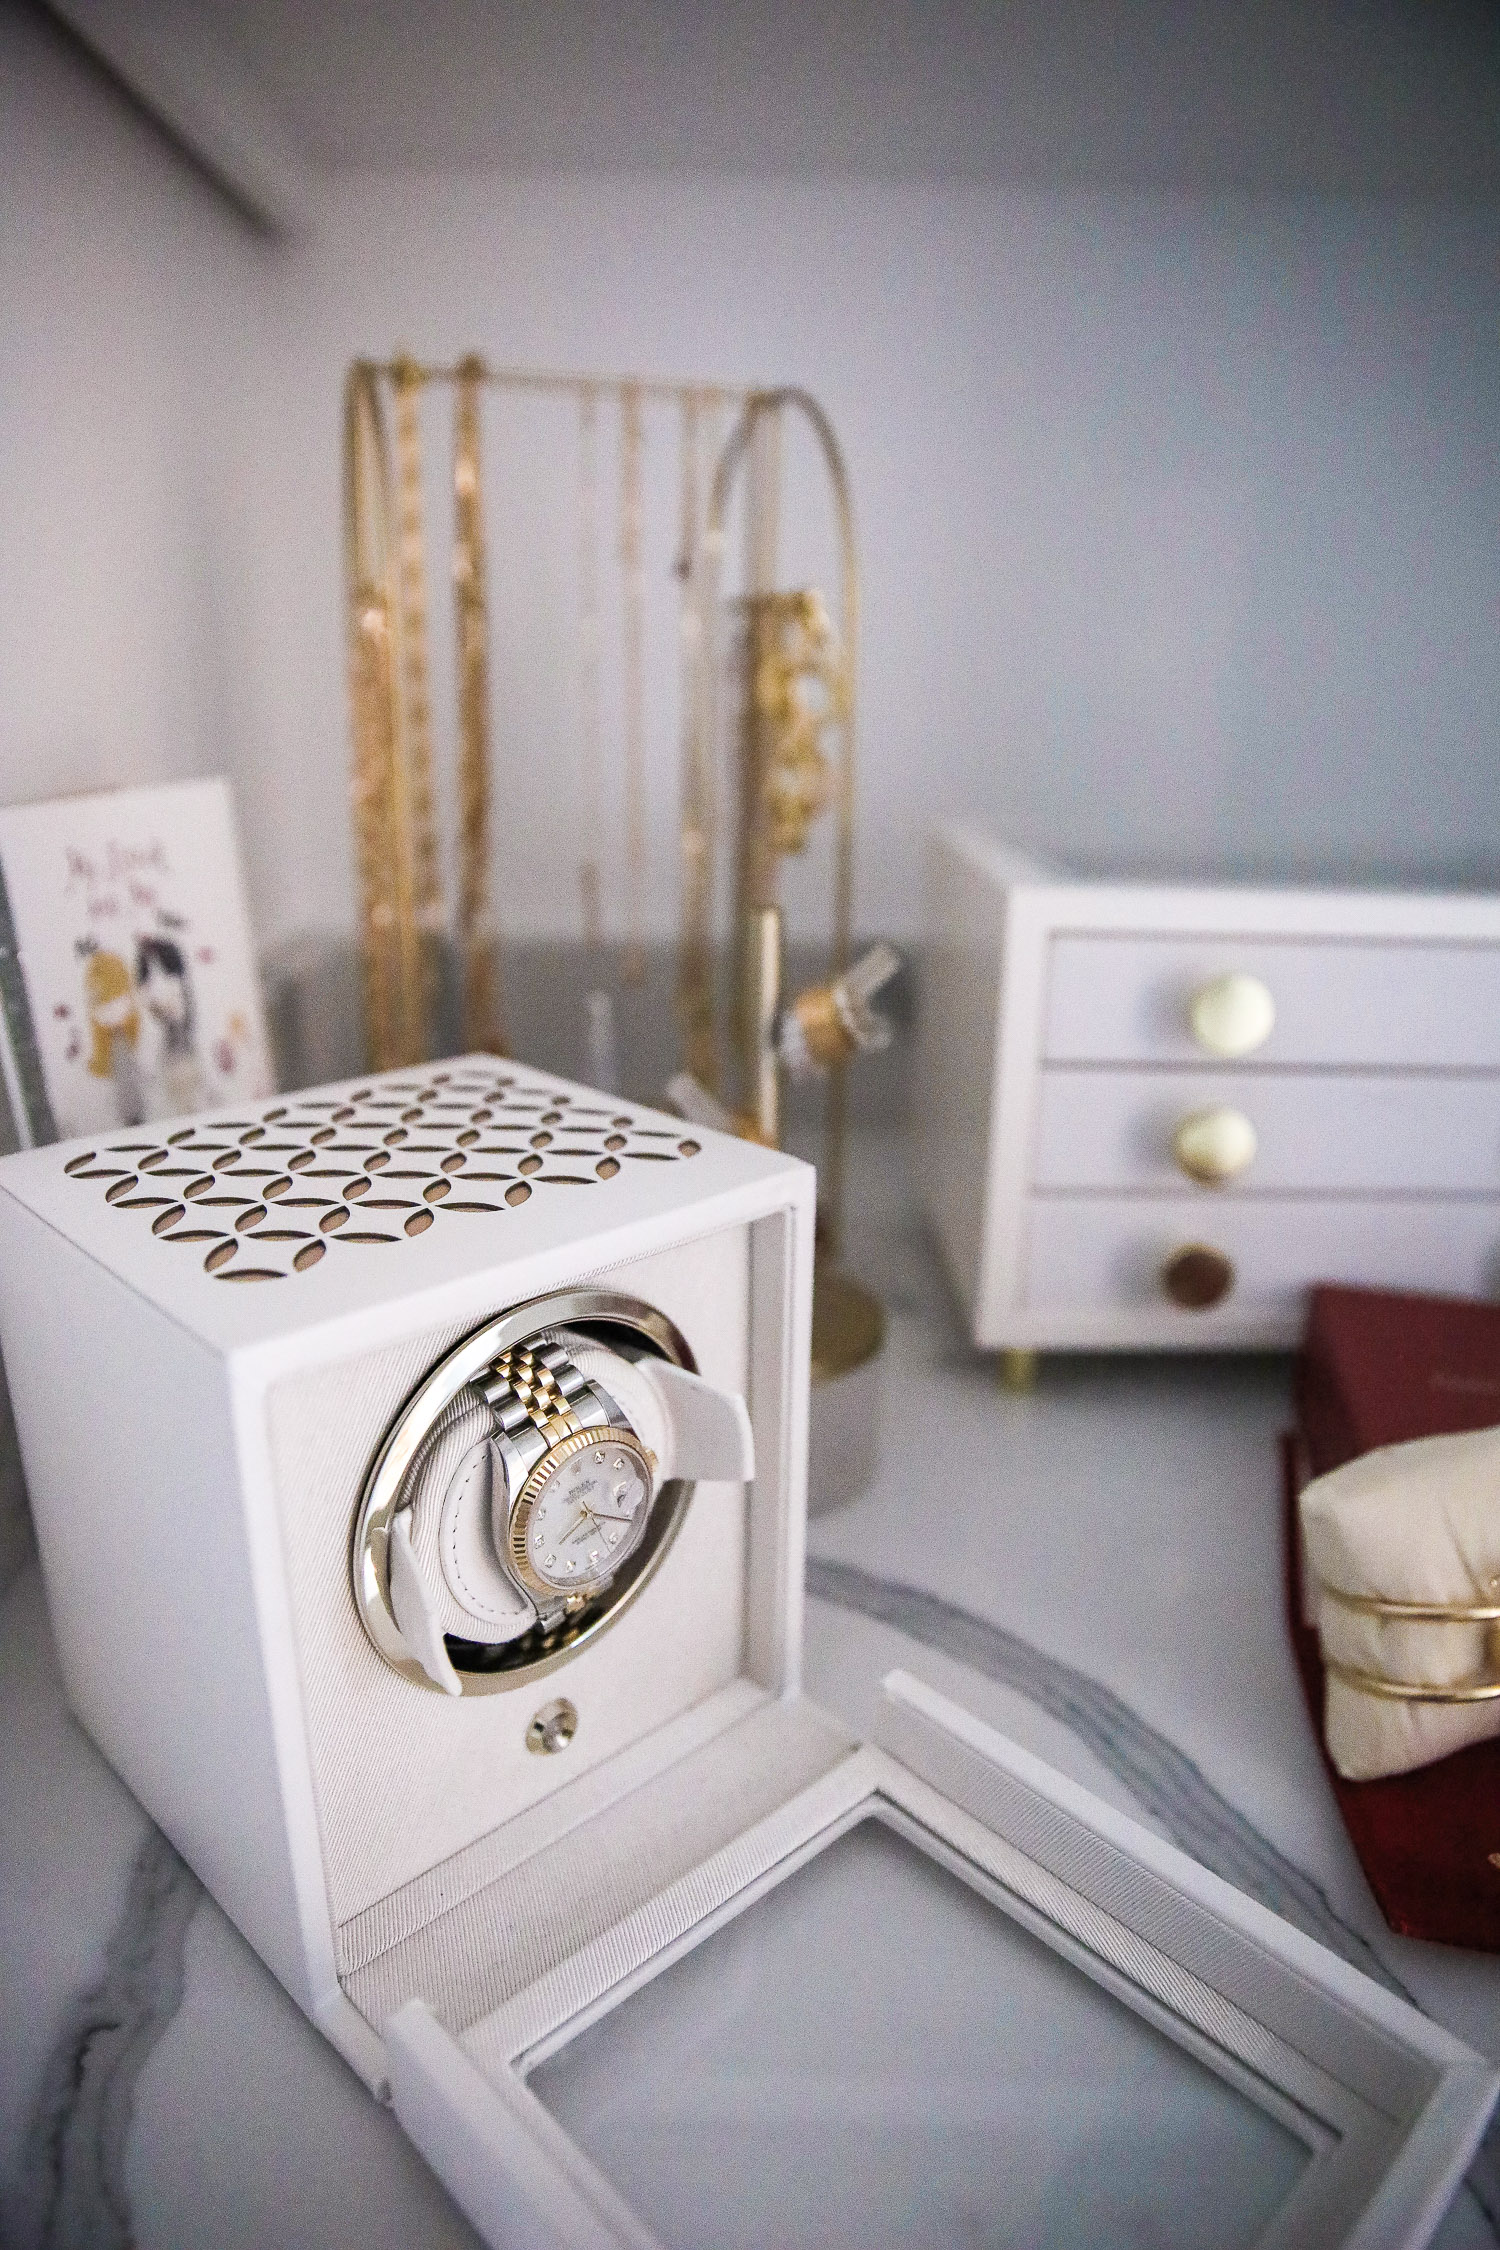 rolex watch winder, white wolf Rolex watch winder, Emily Gemma | Nighttime Routine by popular US beauty blog, The Sweetest Thing: image of a watch winder box, white jewelry box, and gold jewelry rack.